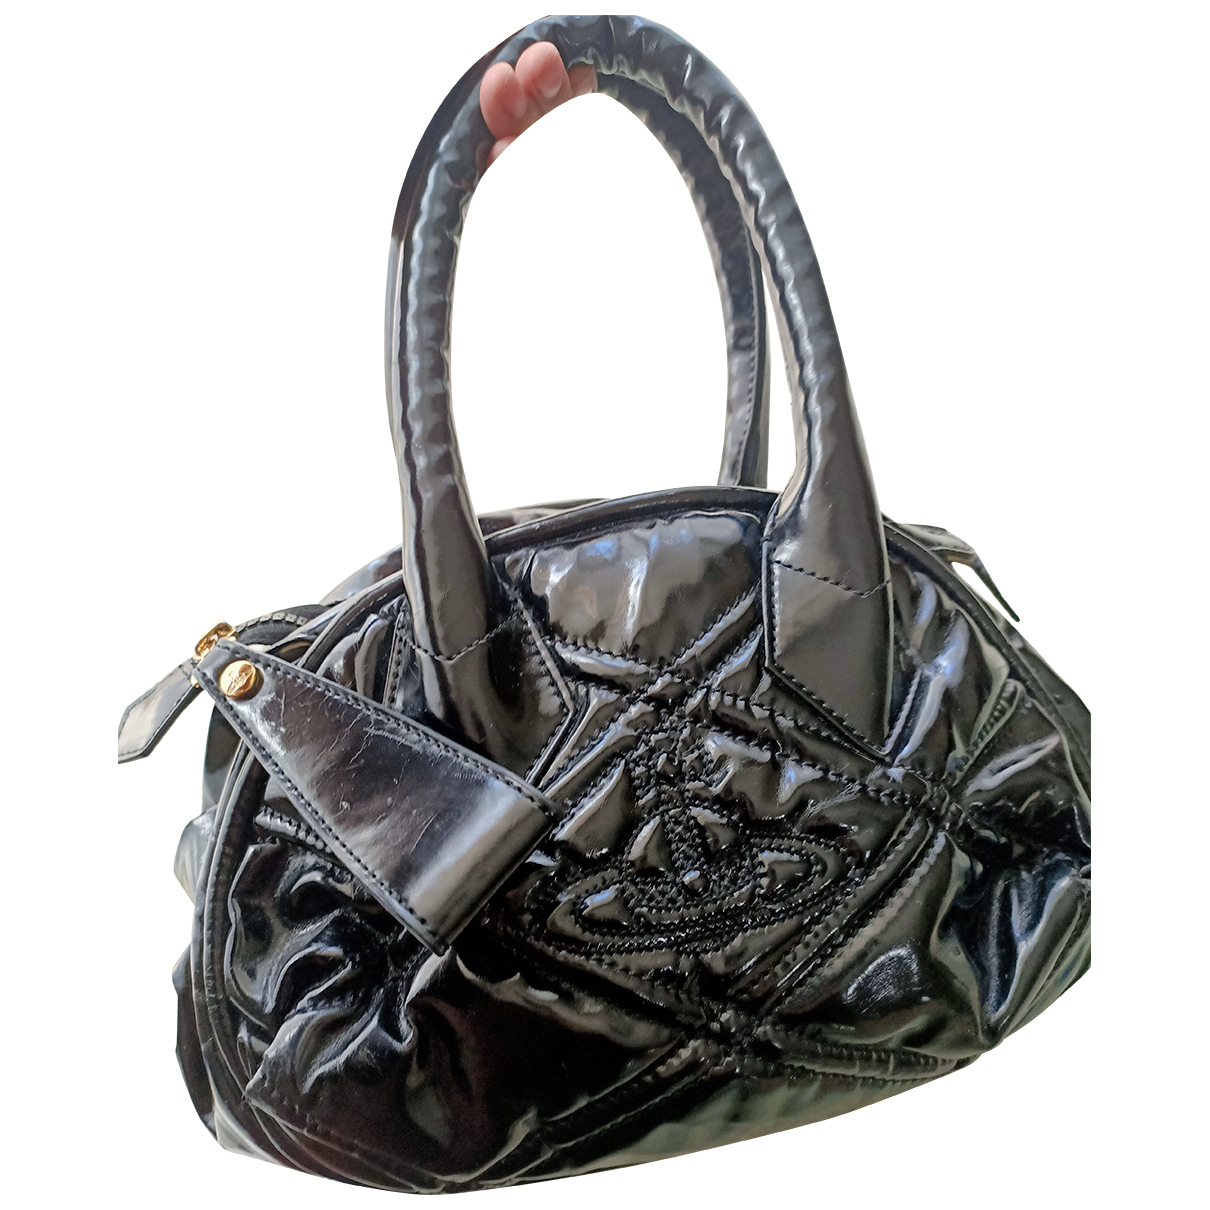 Vivienne Westwood N Black Patent leather handbag for Women N